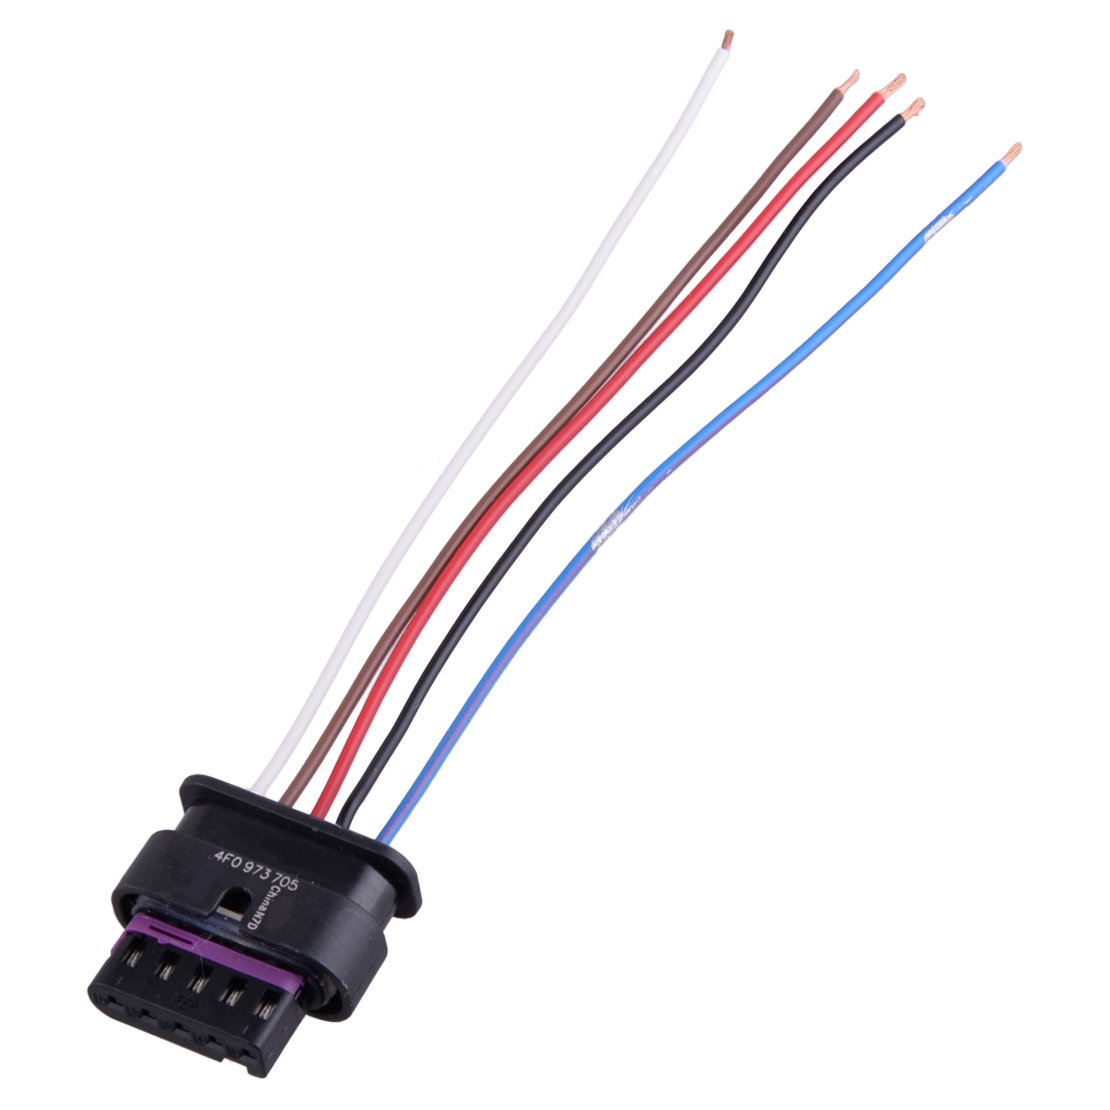 Beler Ambient Air Temperature Sensor Electrical 2 Pin Connector Wire Harness Plug Wiring Fit For